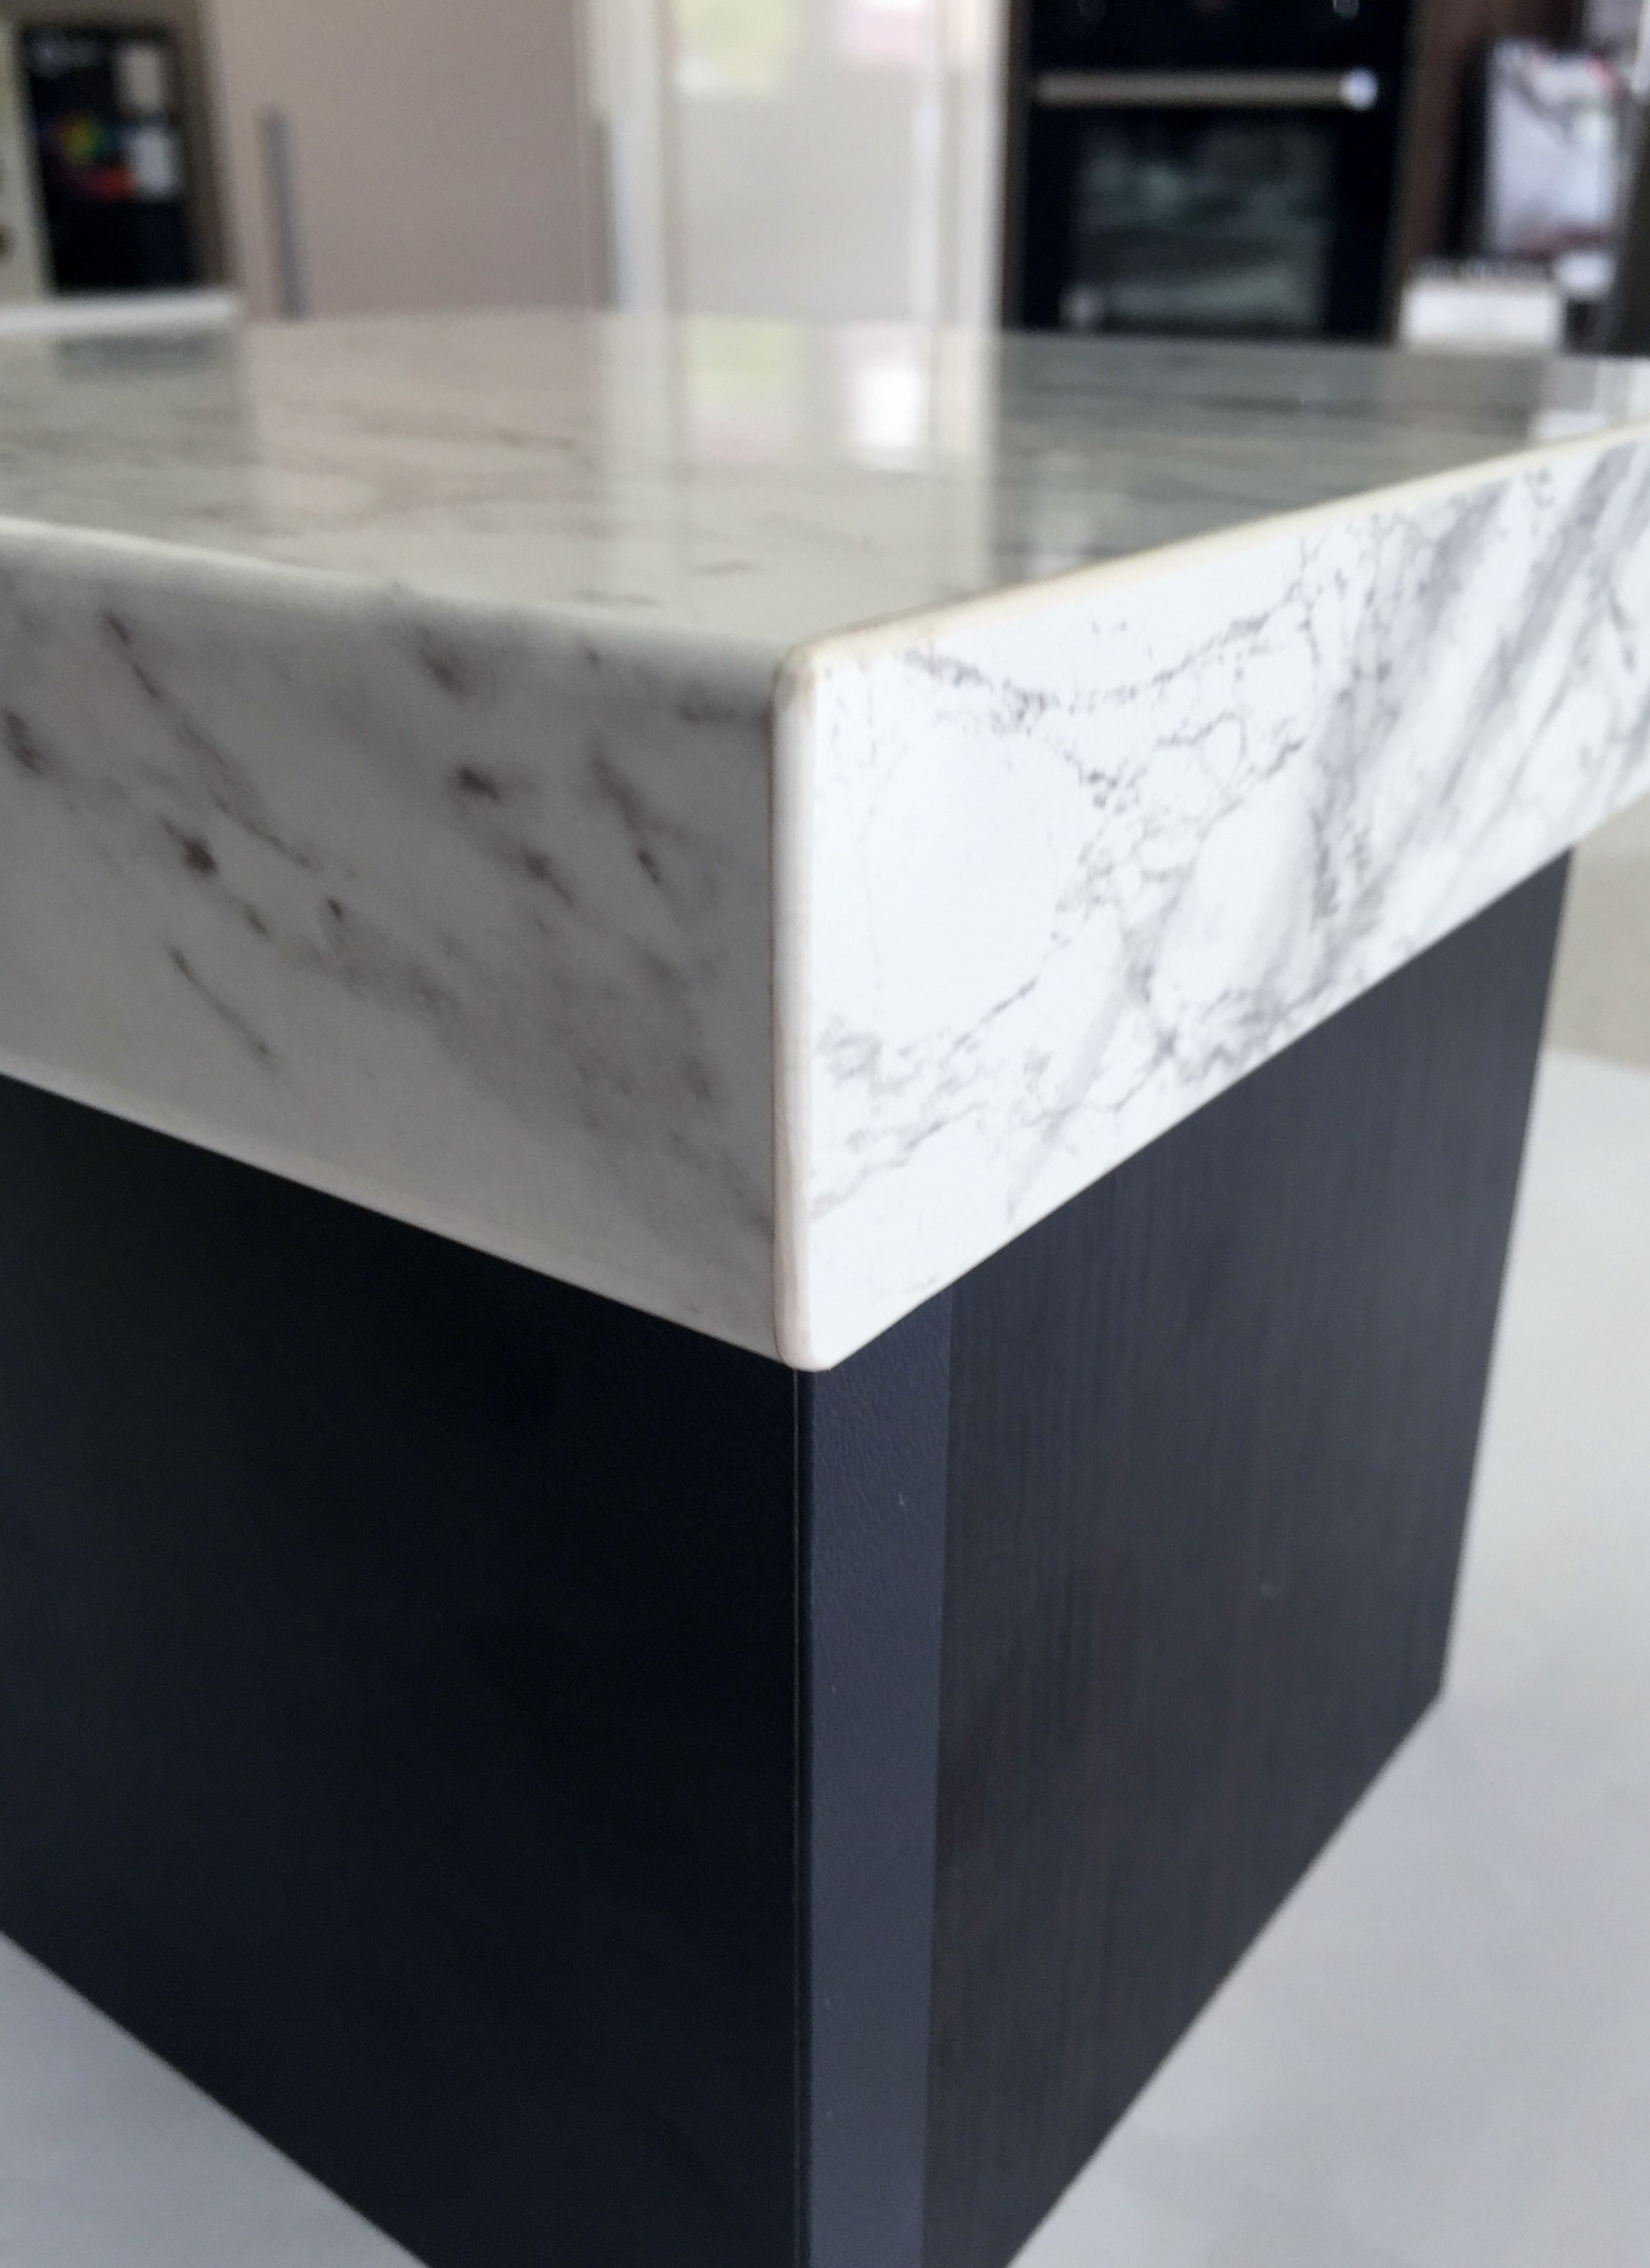 express customize white stone referalprogram quantum com grey benchtop ref bench quartz inspiration pin id engineered kitchen top expressflooring